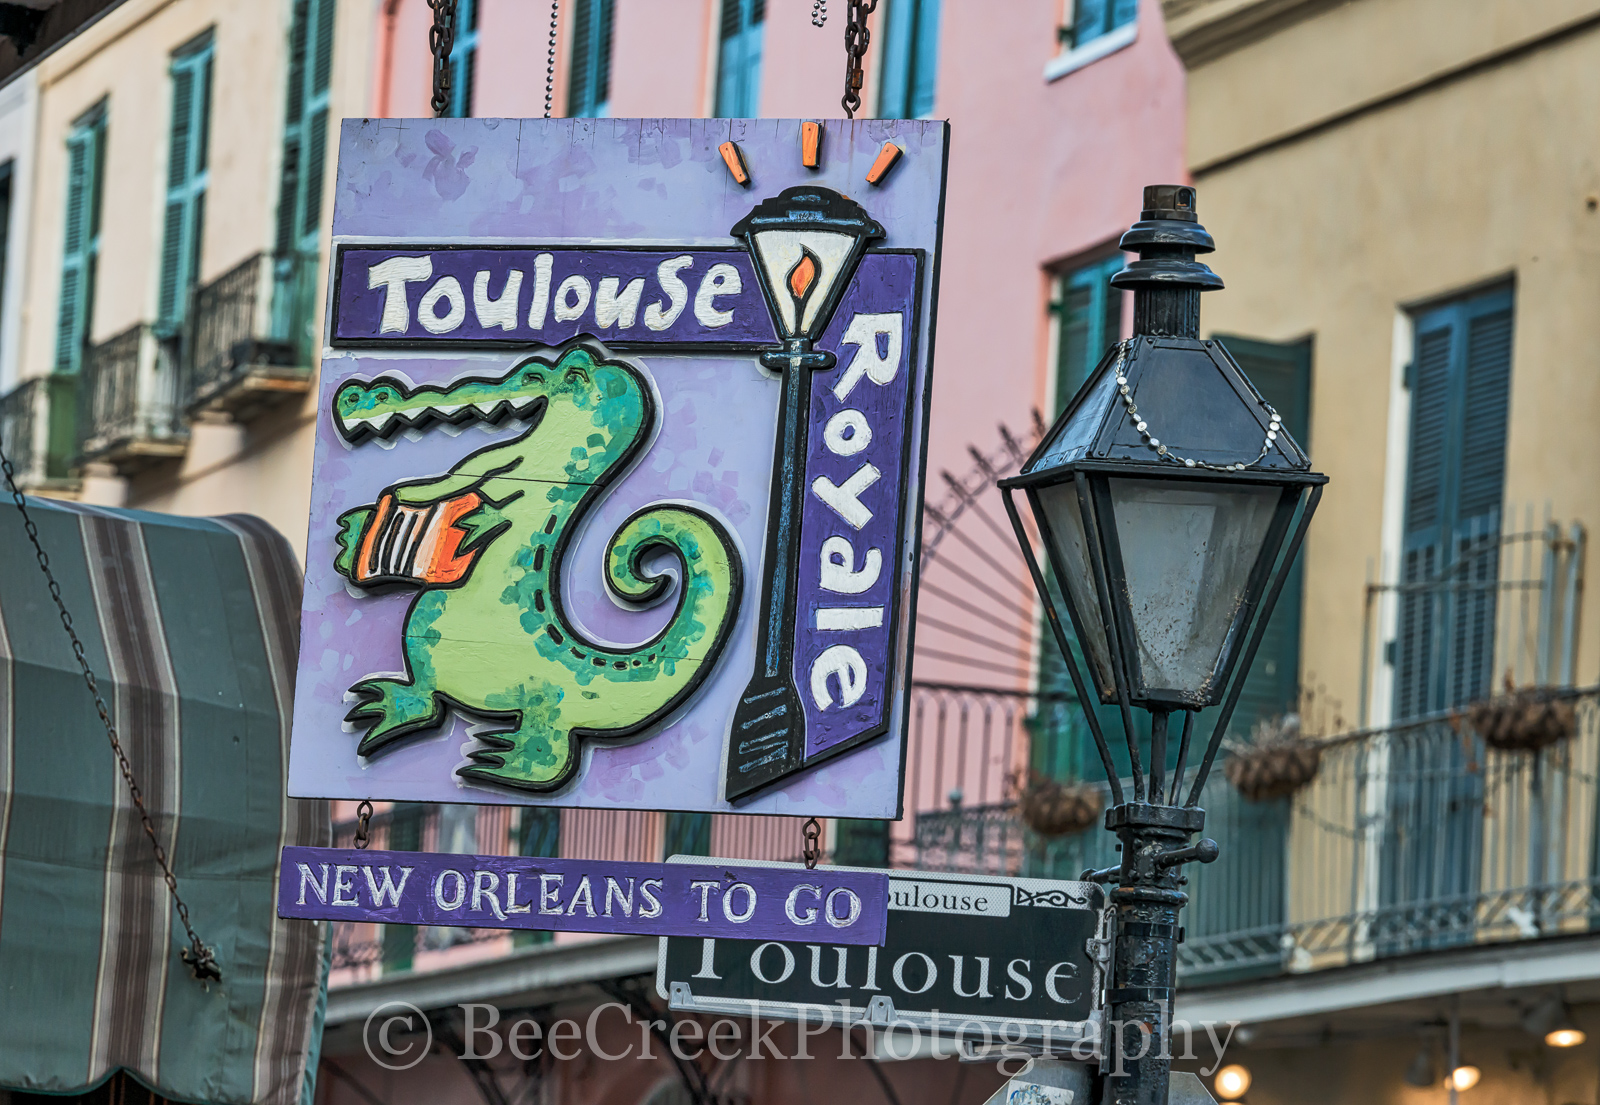 Bourbon Street, French Quarter, New Orleans, bars, day, live music, neon, neon signs, restaurants, signs, Toulouse and royal street sign, , New Orleans cityscapes, photo